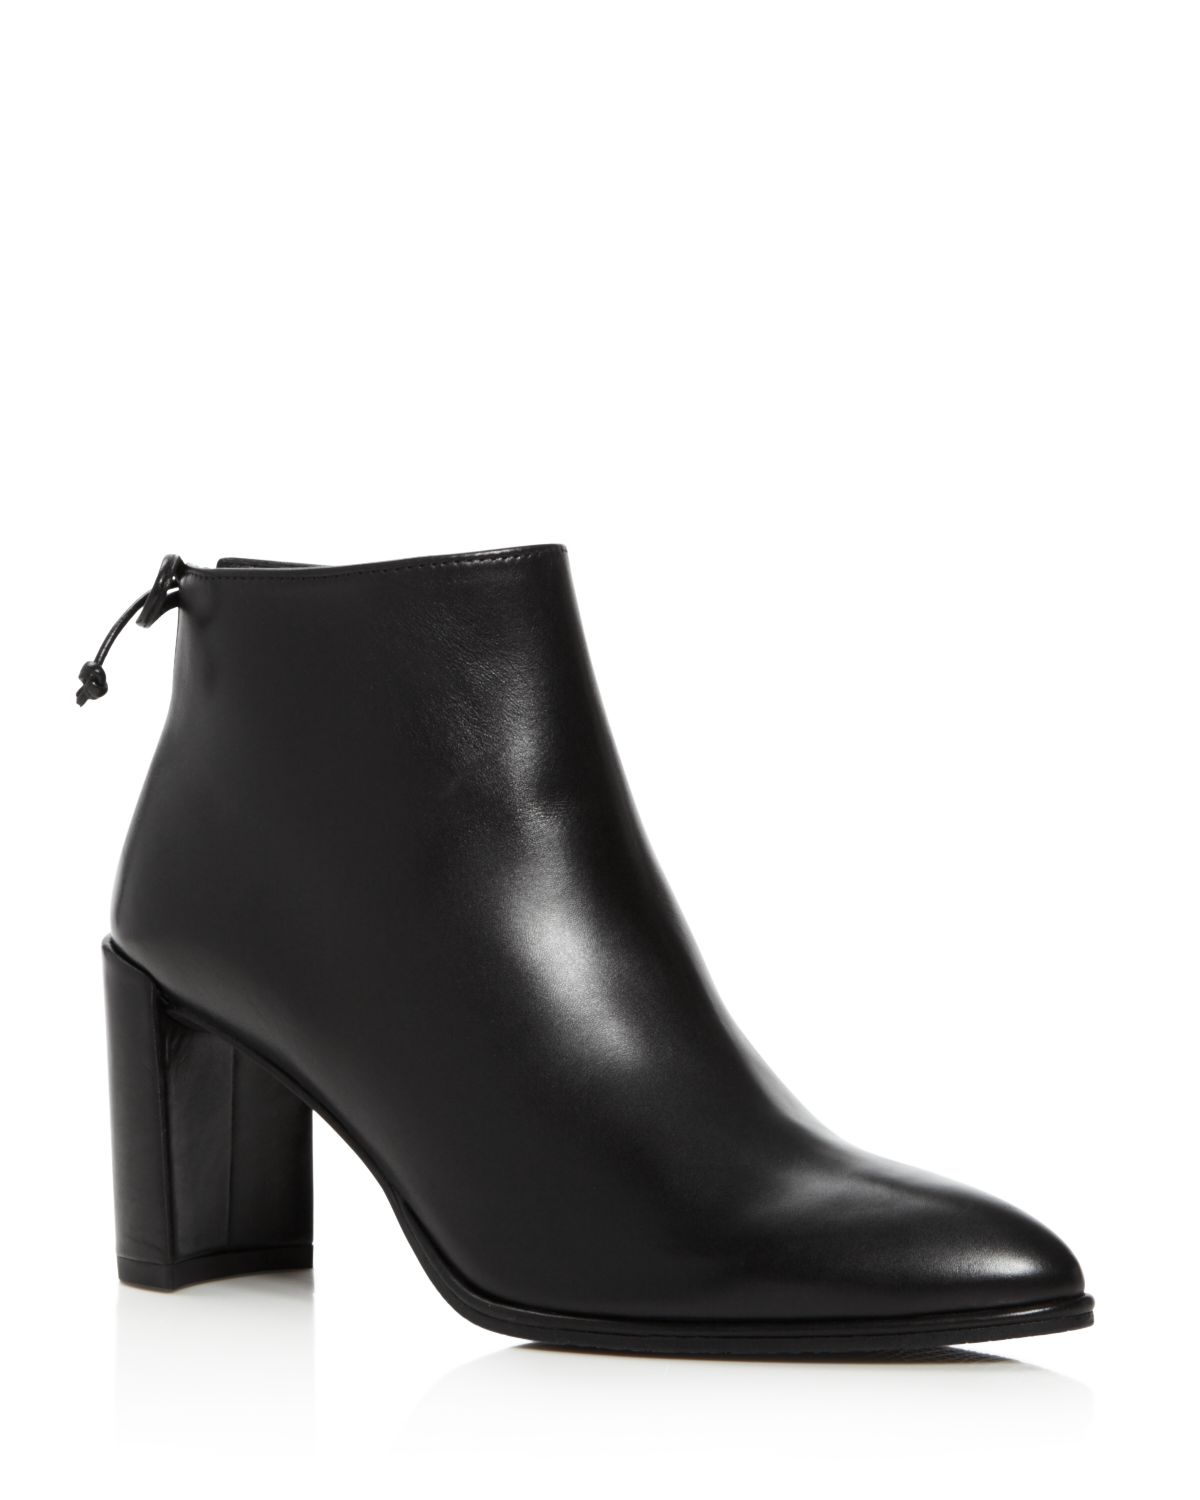 Stuart Weitzman Lofty Block Heel Booties